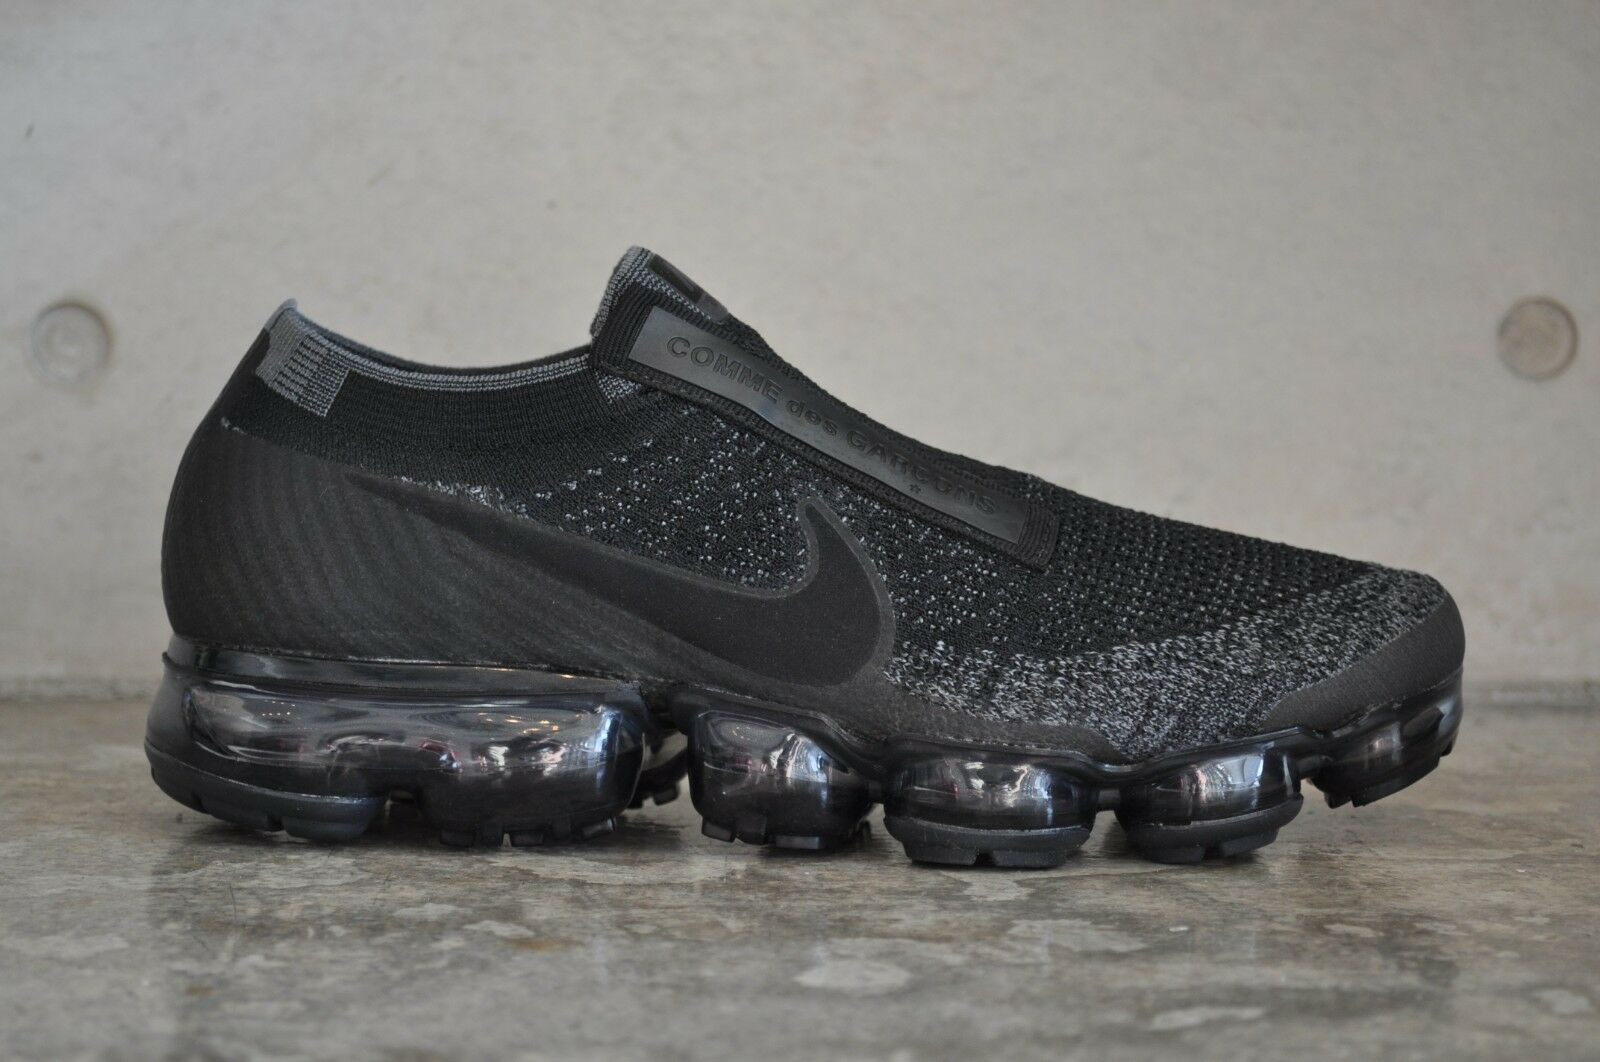 Nike Air Vapormax Flyknit CDG Comme Des Garcons - Black Dark Grey 7.5 UK